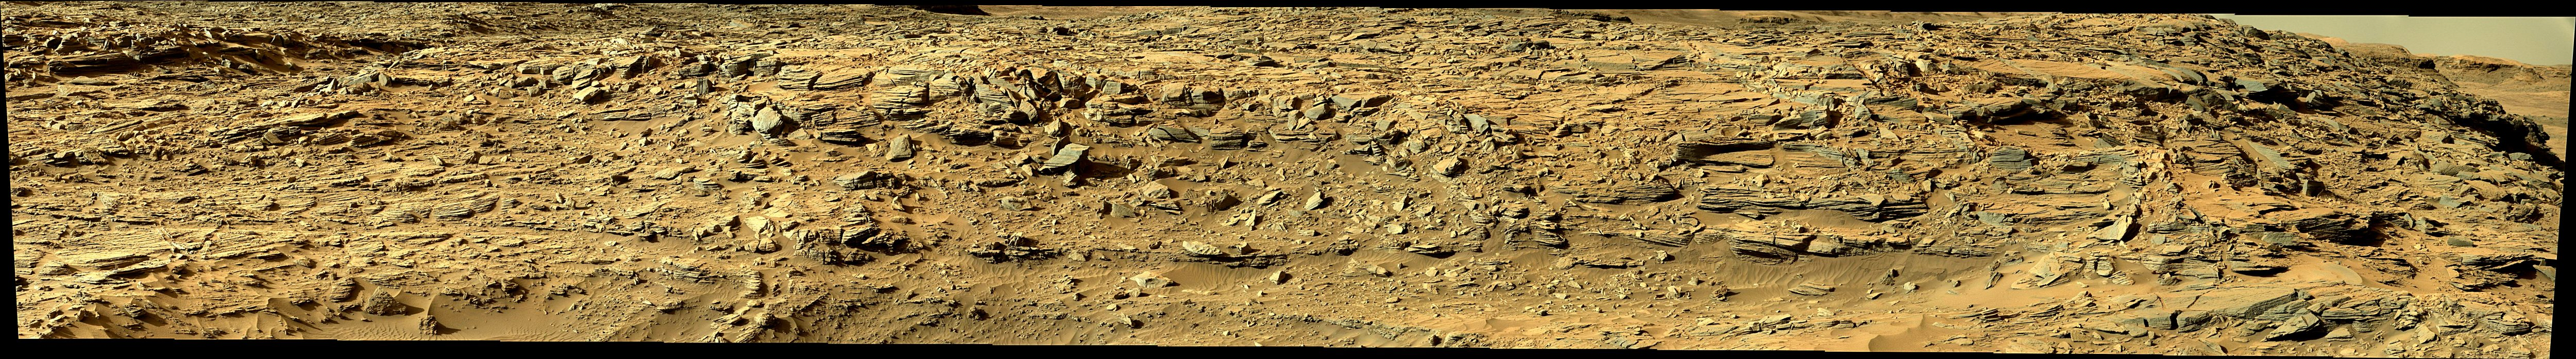 panoramic curiosity rover view 2 enhanced - sol 1301 - was life on mars